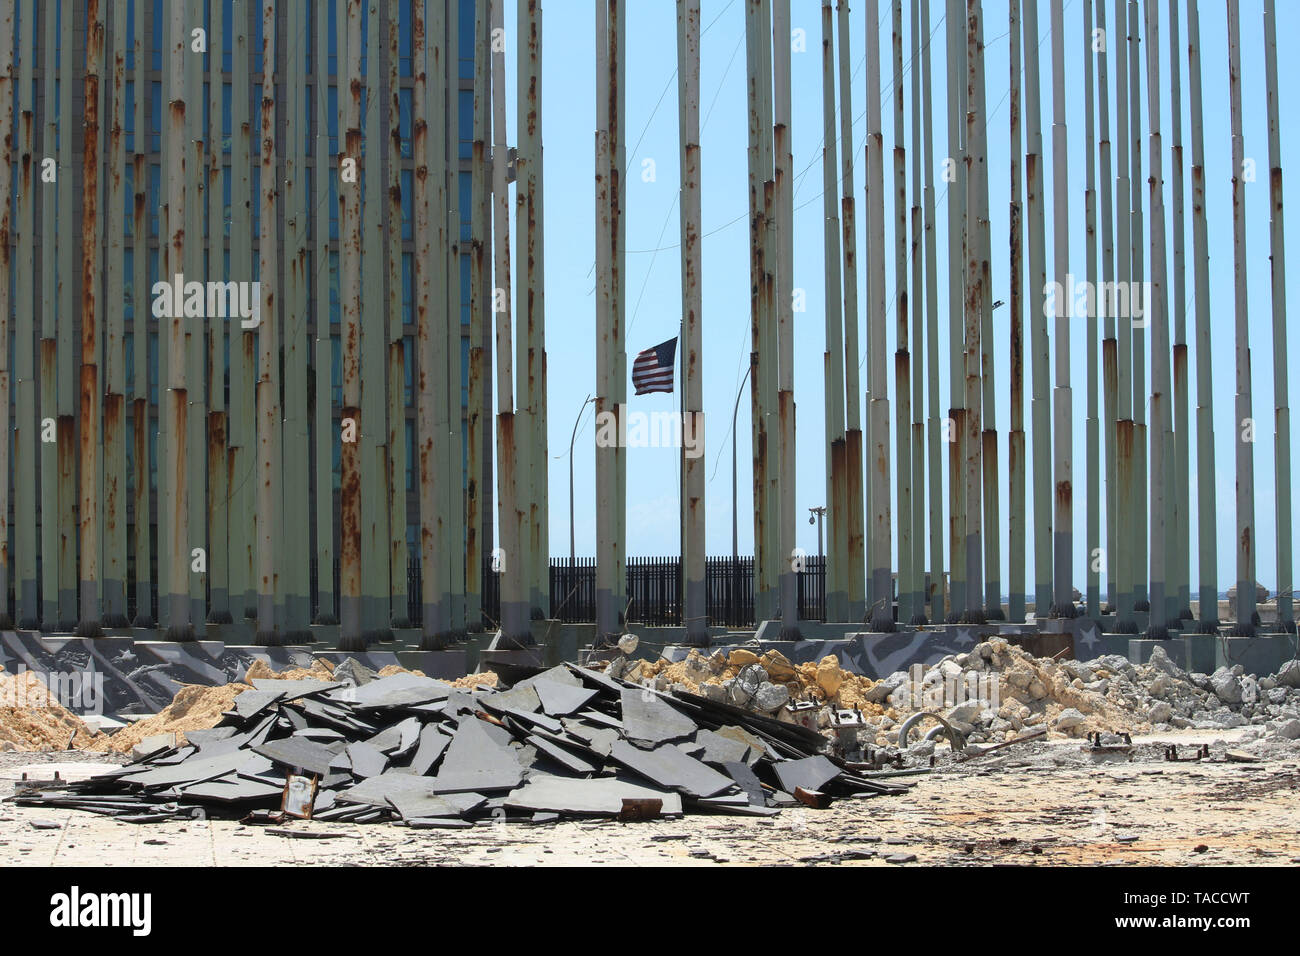 Havanna, Cuba. 23rd May, 2019. Debris lies on the 'Anti-imperialist Tribune'. Workers are currently renovating the 'Anti-imperialist Tribune' right in front of the US embassy in the Cuban capital. Credit: Guillermo Nova/dpa/Alamy Live News - Stock Image